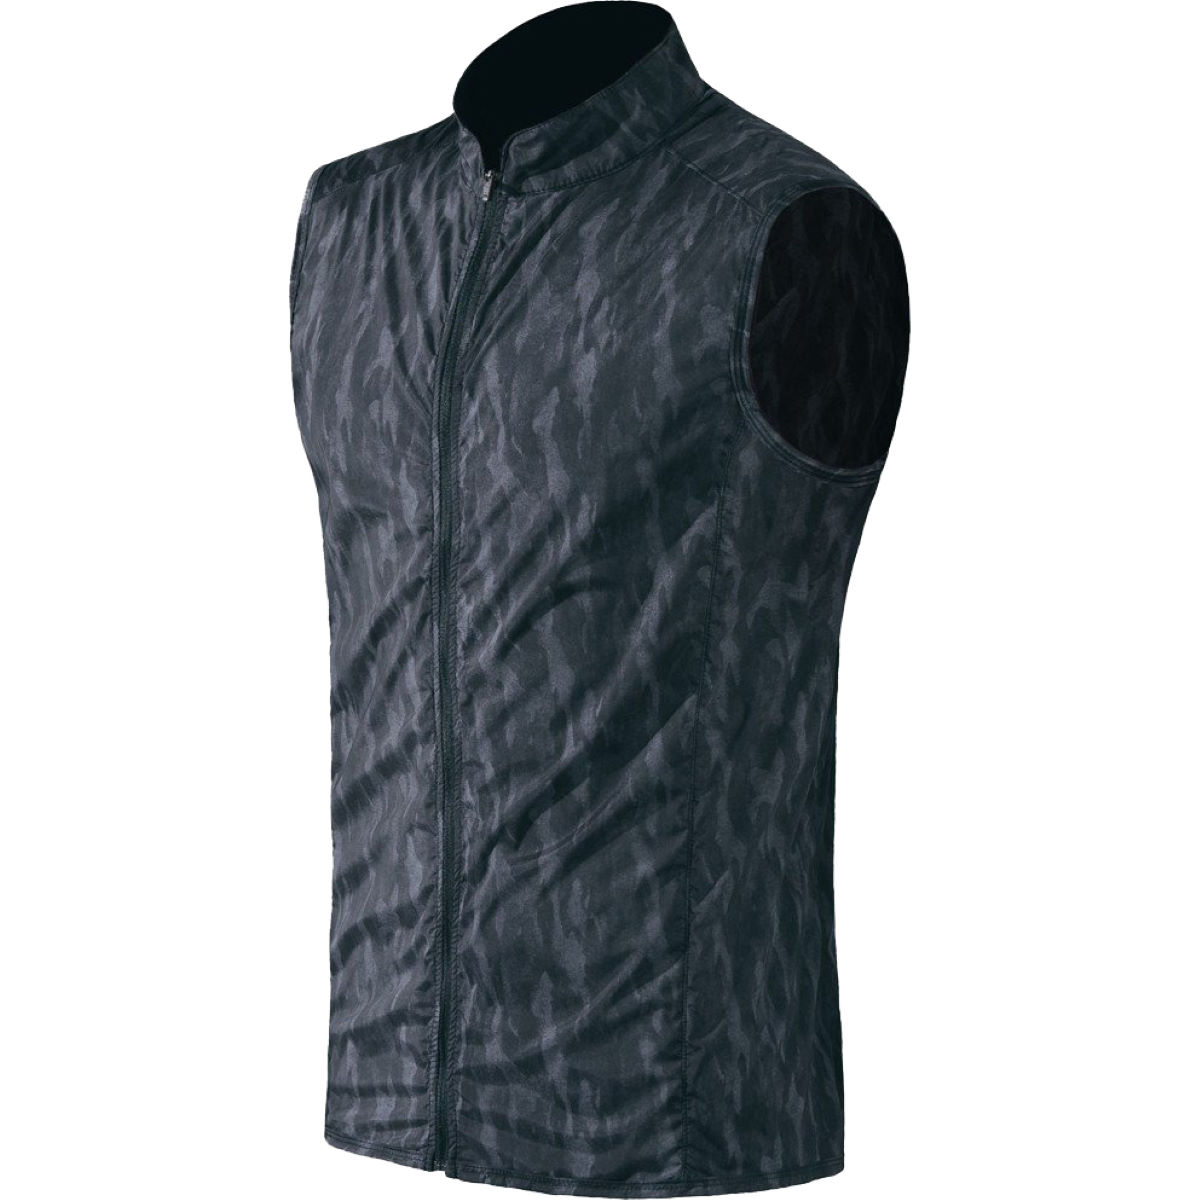 Acre Supply The Interval Vest - Chalecos de ciclismo